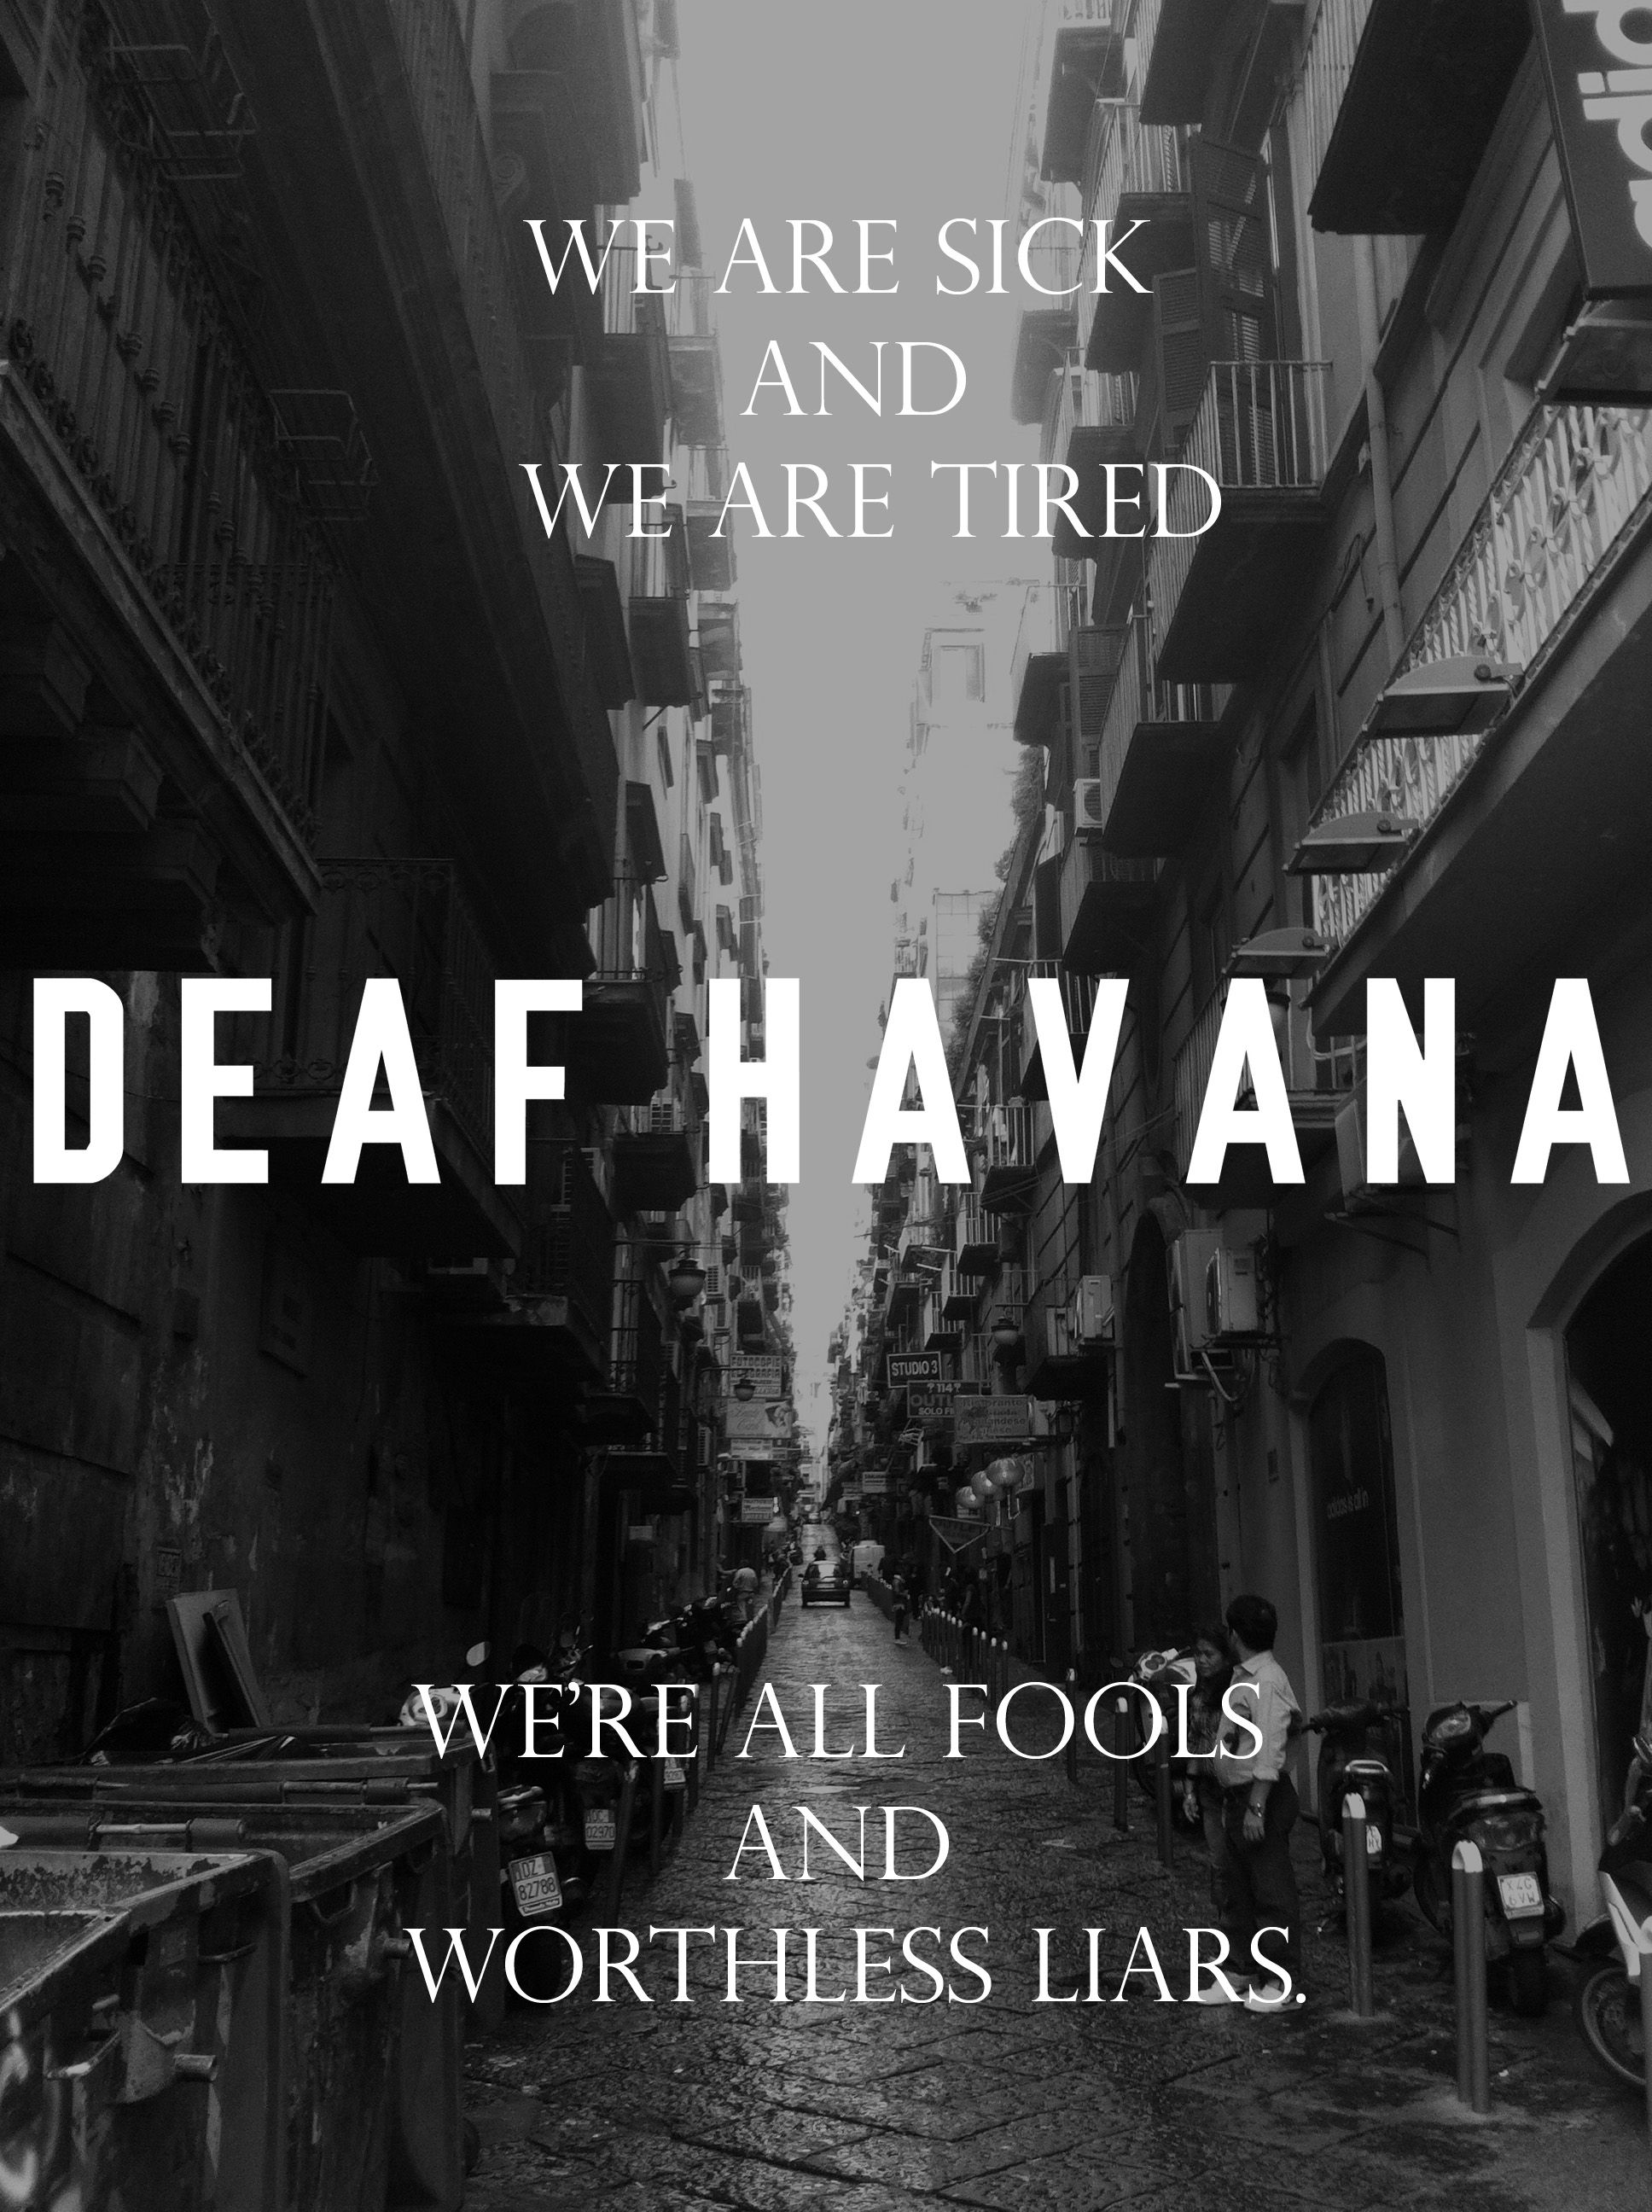 Deaf havana lyrics from the song the past six years image from a deaf havana lyrics from the song the past six years image from a trip to italy in october 2013 kevin prescott stopboris